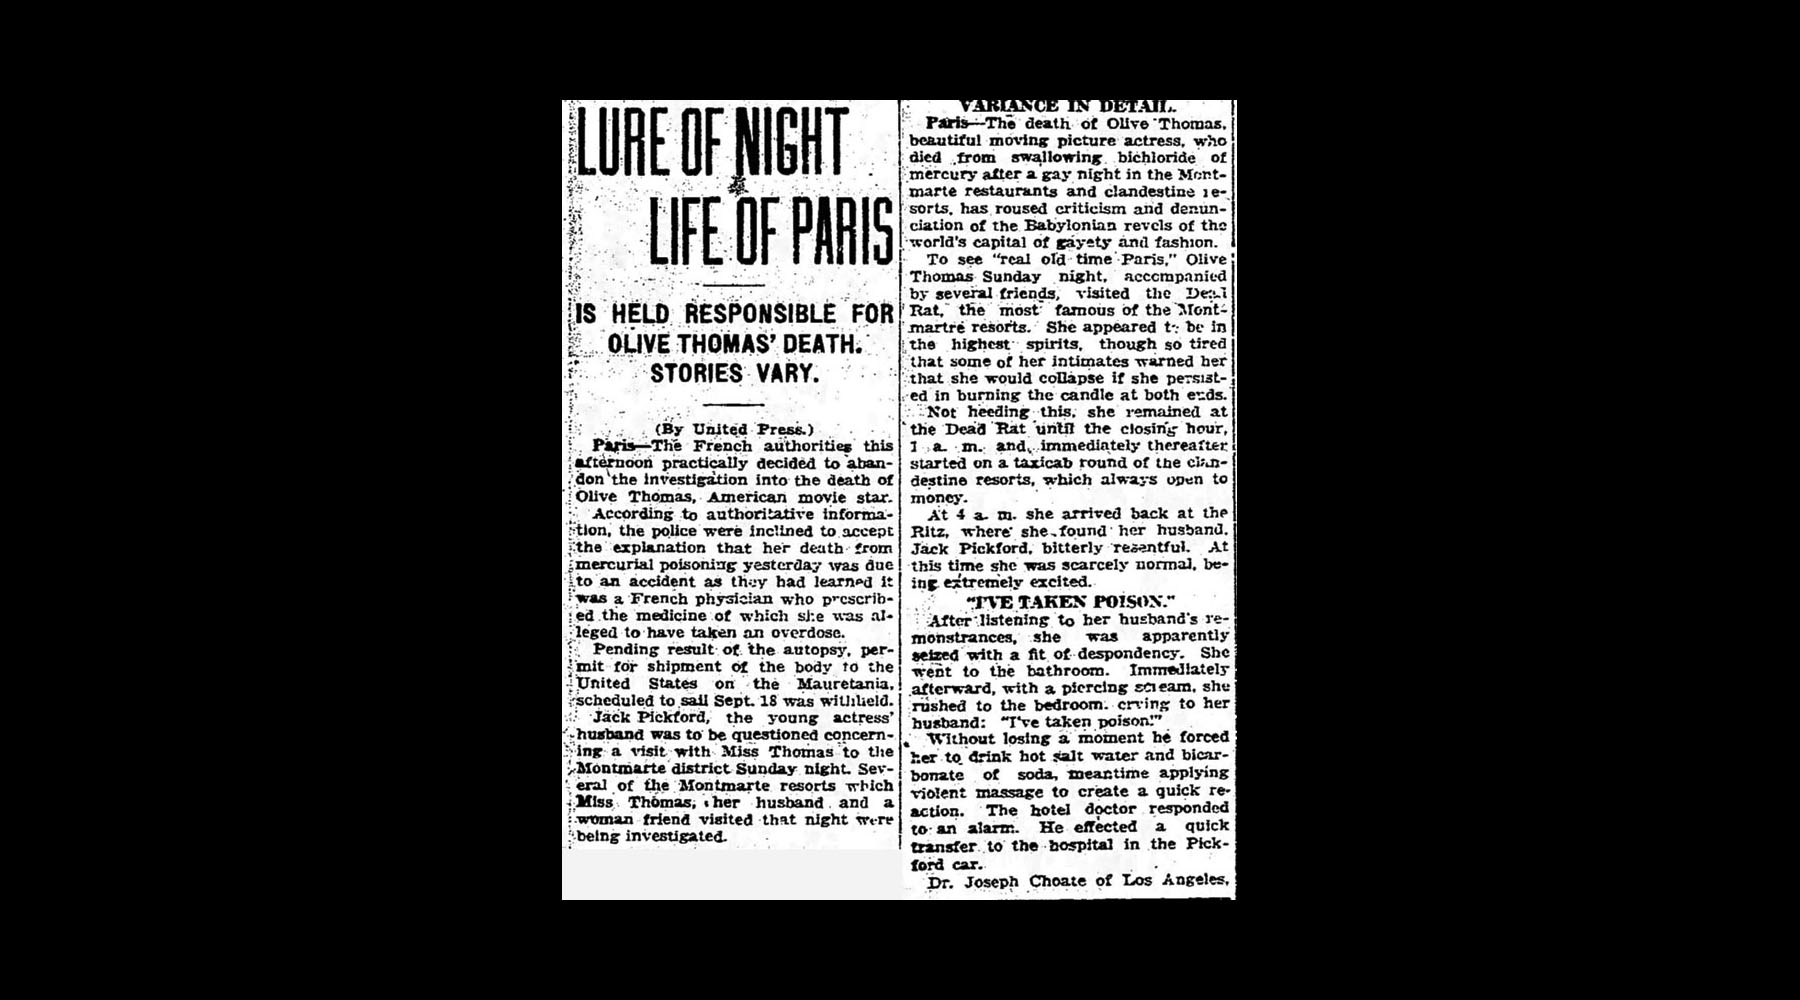 She died a few days later. The lure of Parisian nightlife was initially blamed for her death.